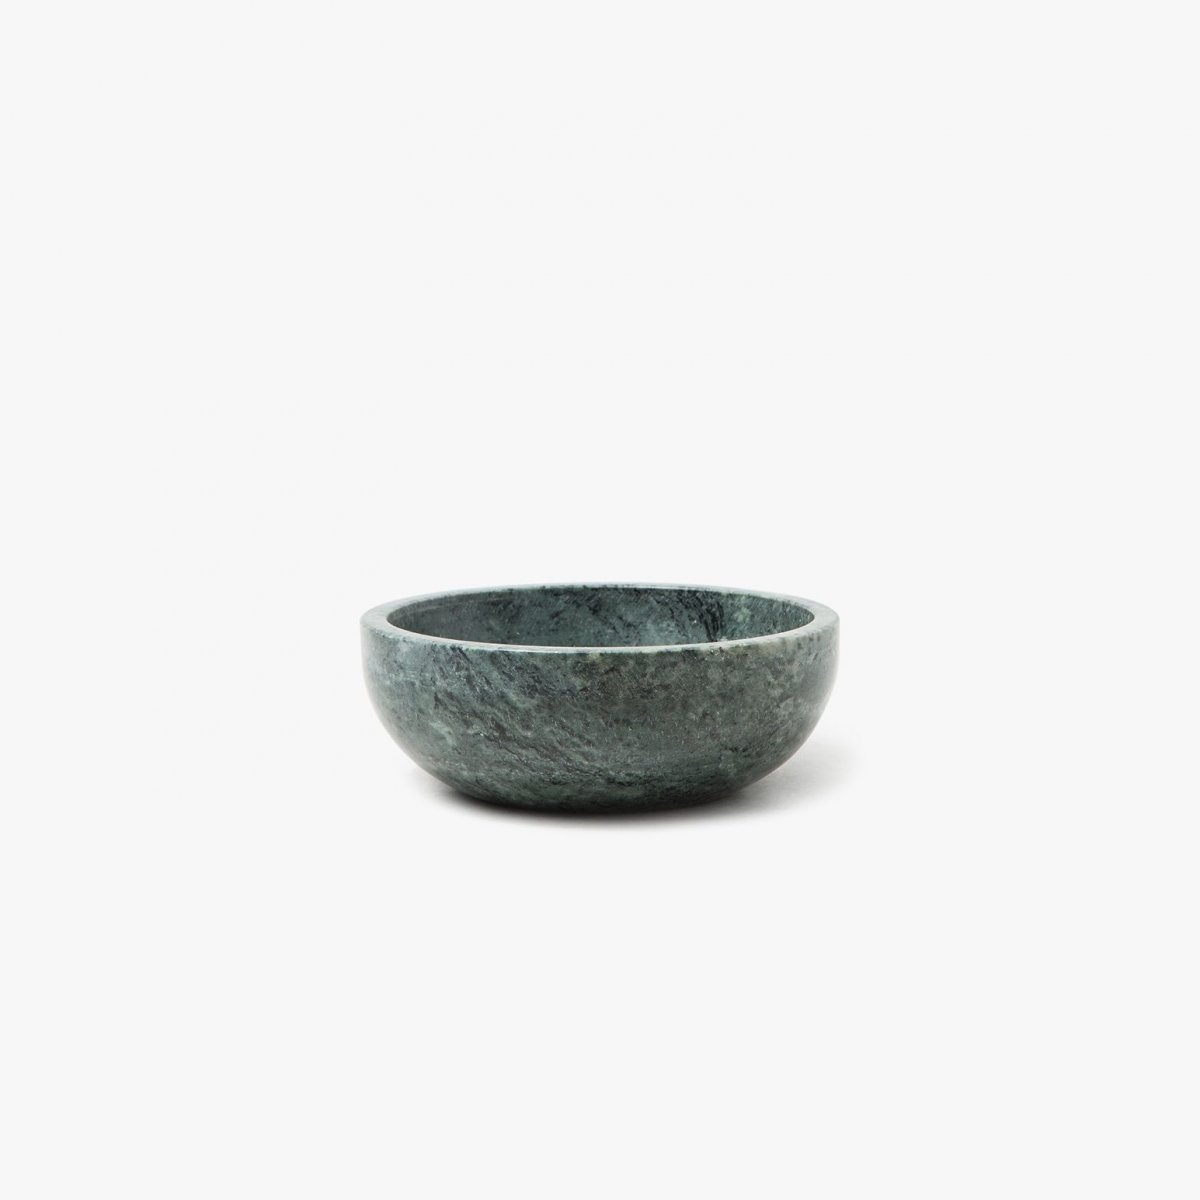 Mara Serving Collection - Large Bowl Green.